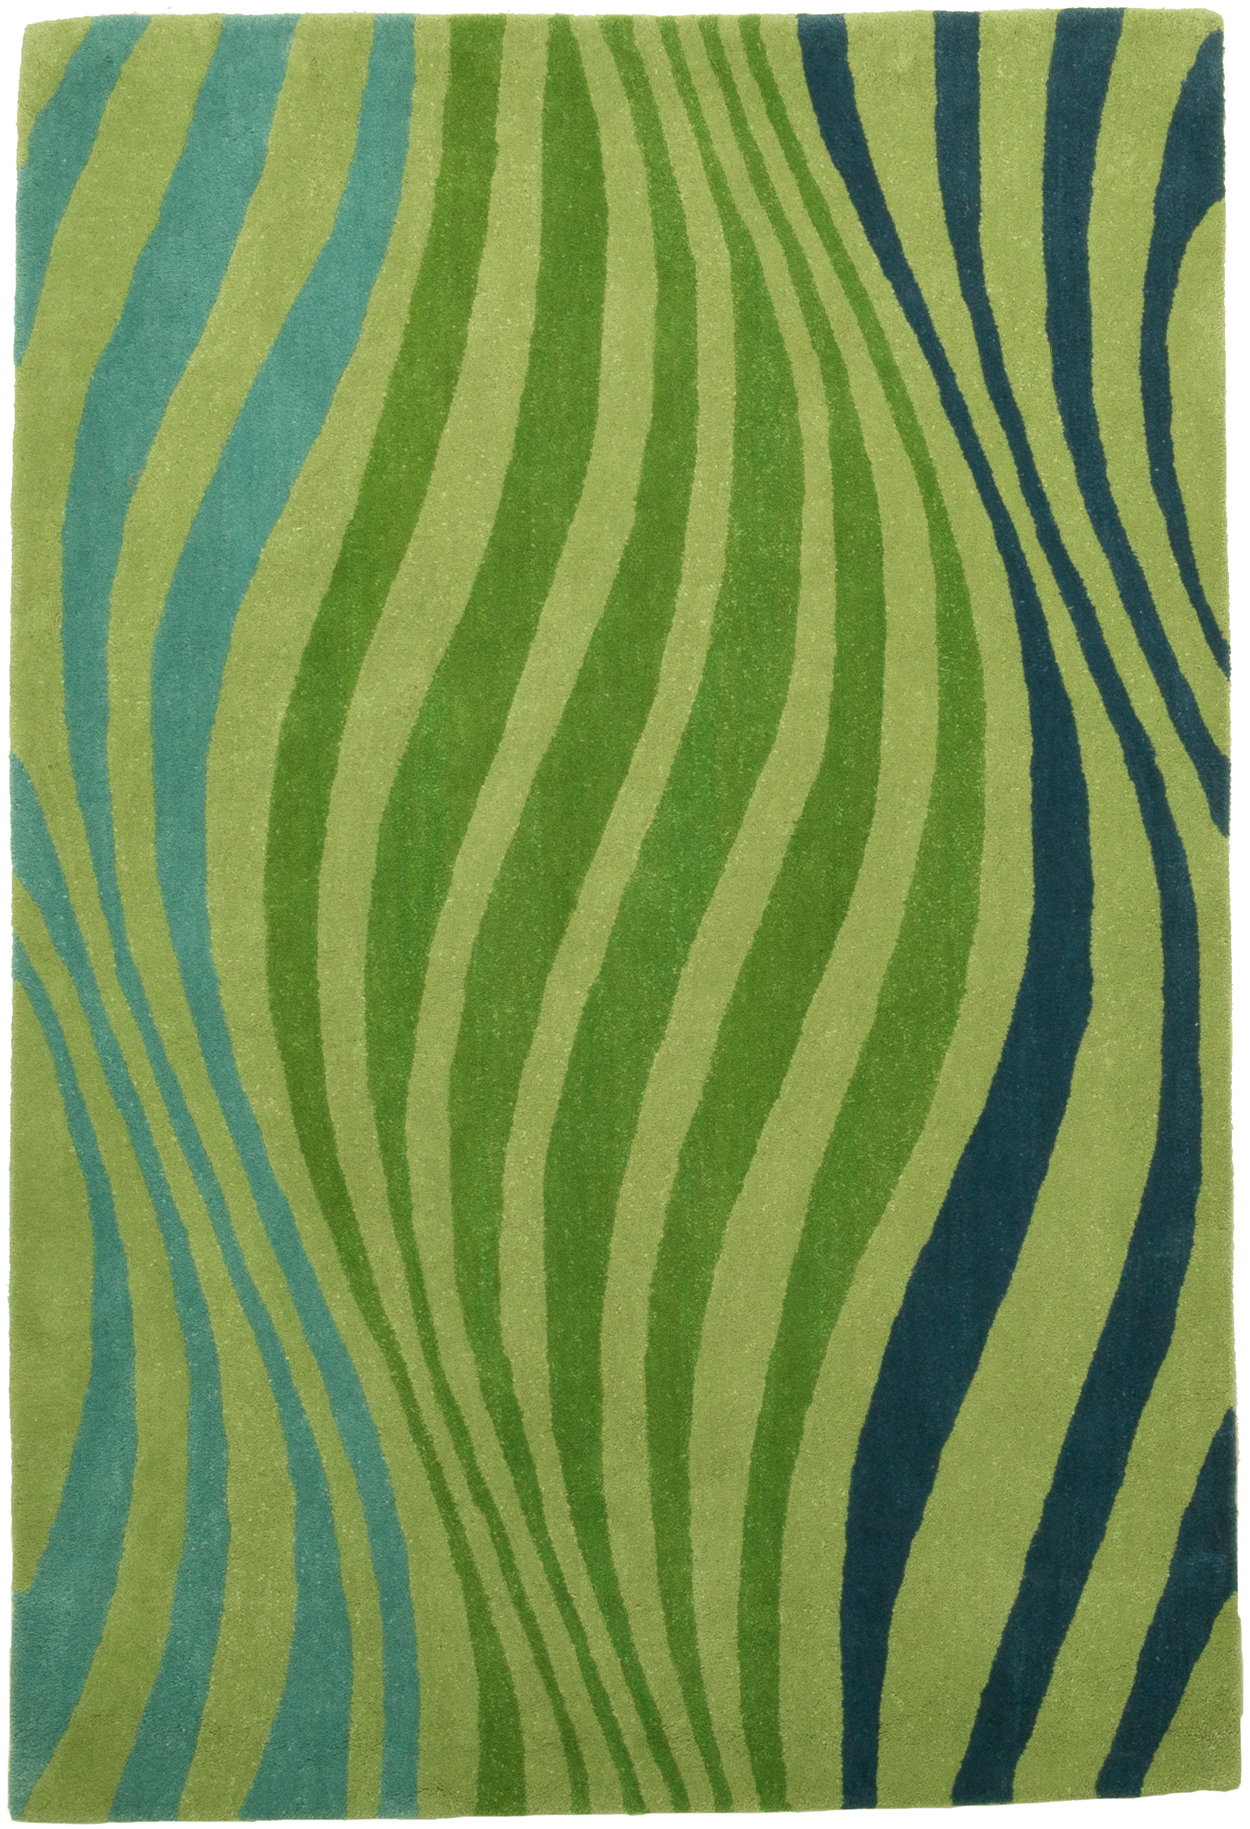 Christopher Farr (b. 1953) Sulpice Hand-tufted rug, wool 1.22 x 1.83 m Edition of 150